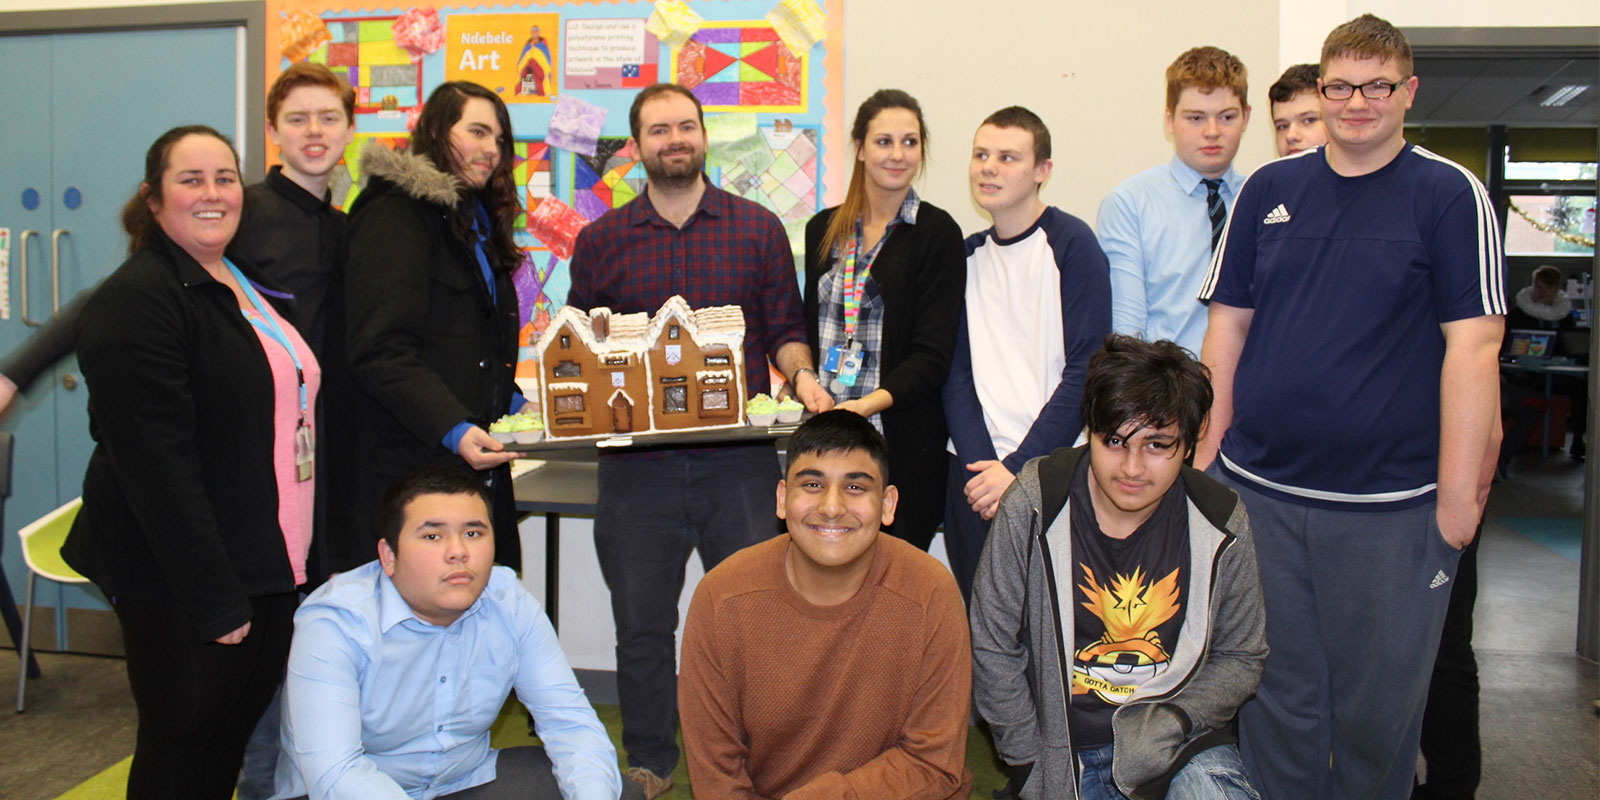 Bake off, gingerbread house